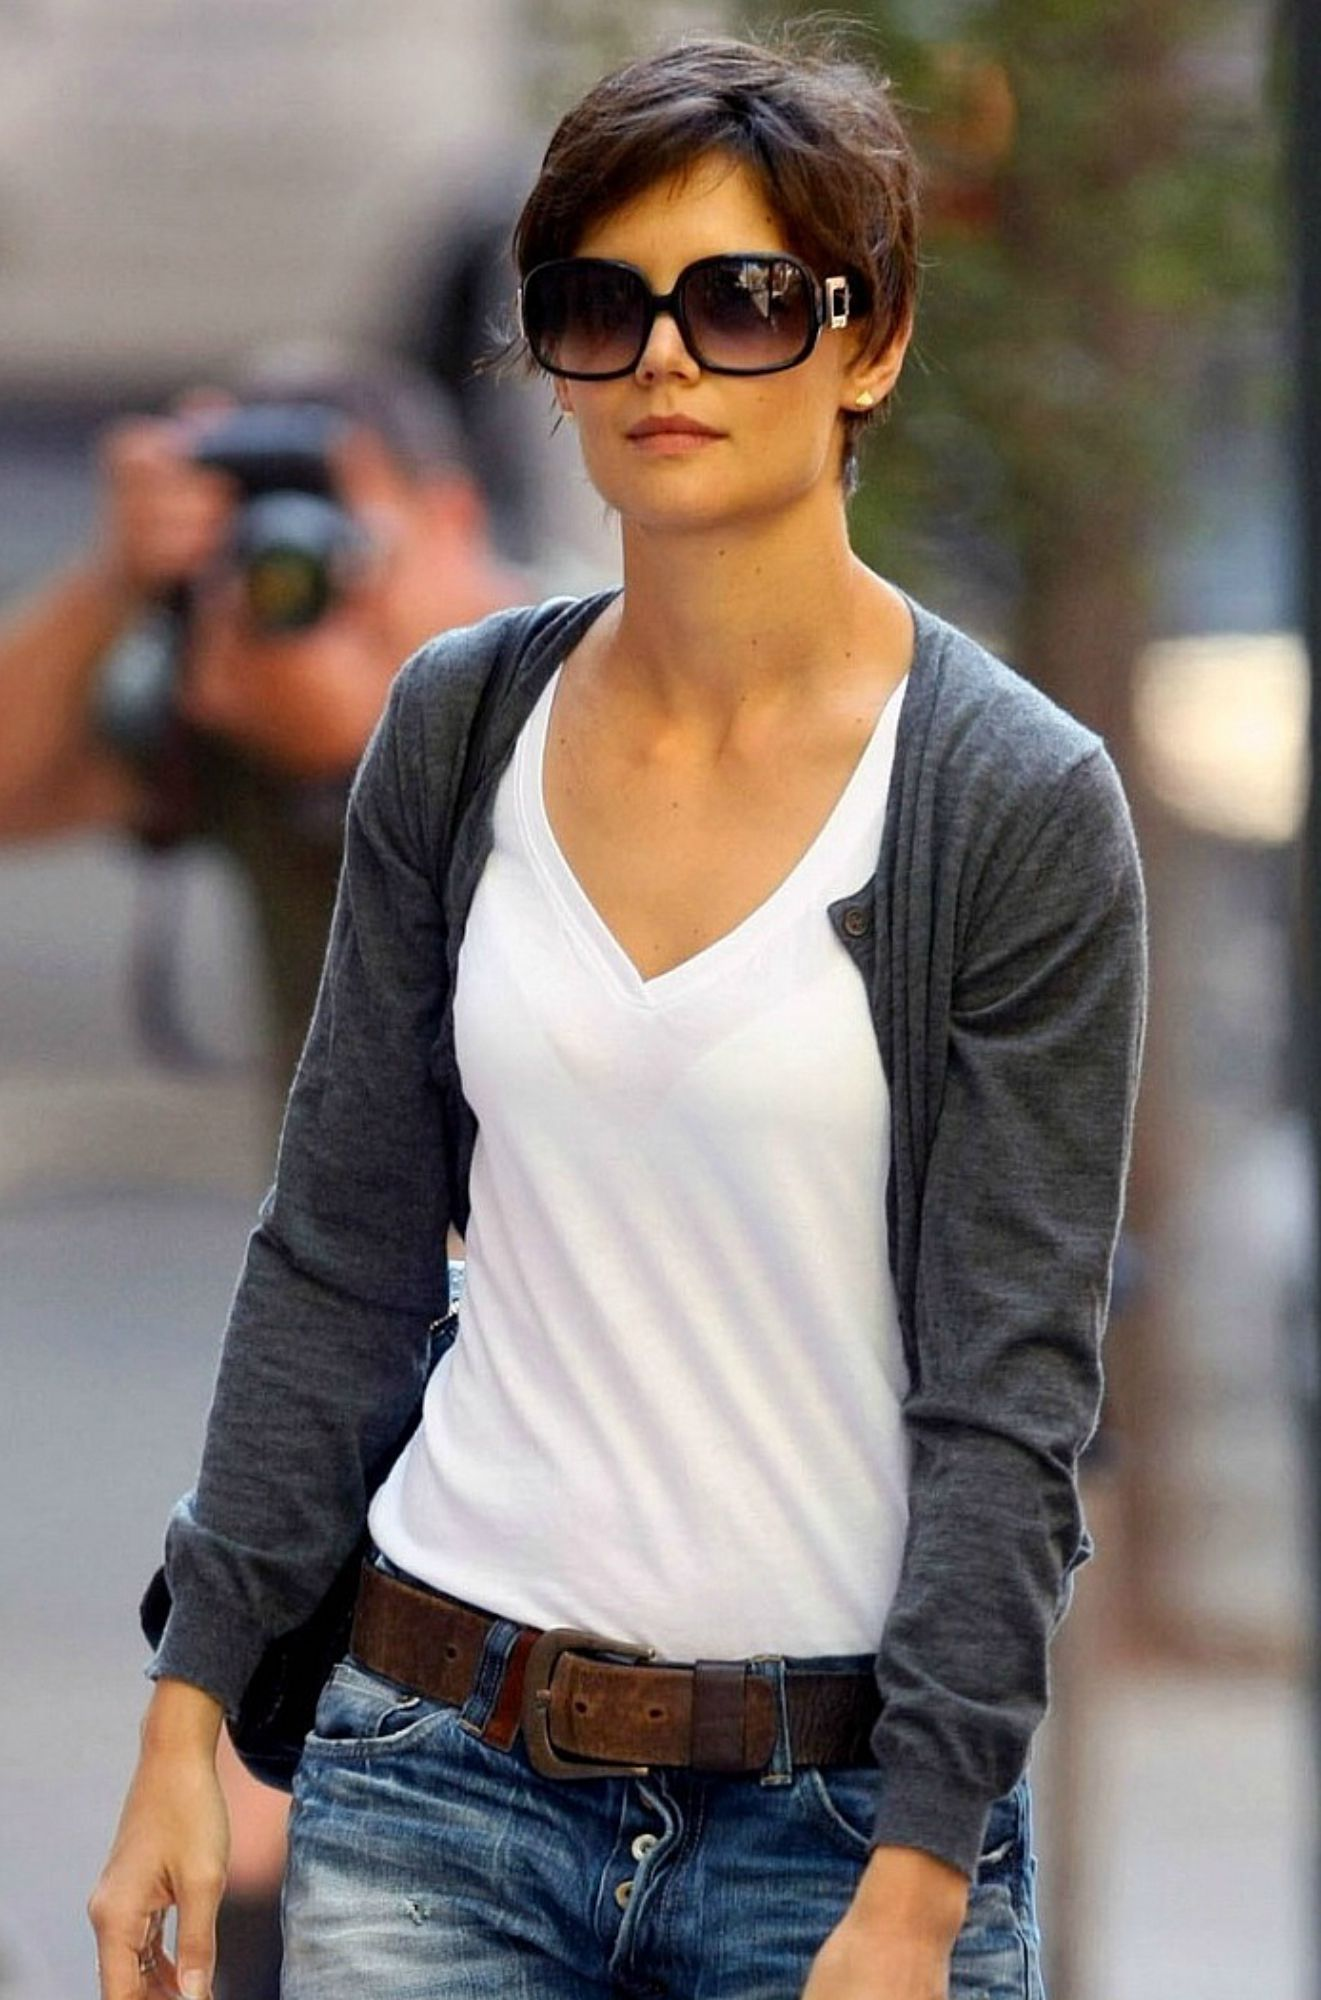 Hairstyle For Short Hair On Jeans : Katie Holmes My Style Pinterest